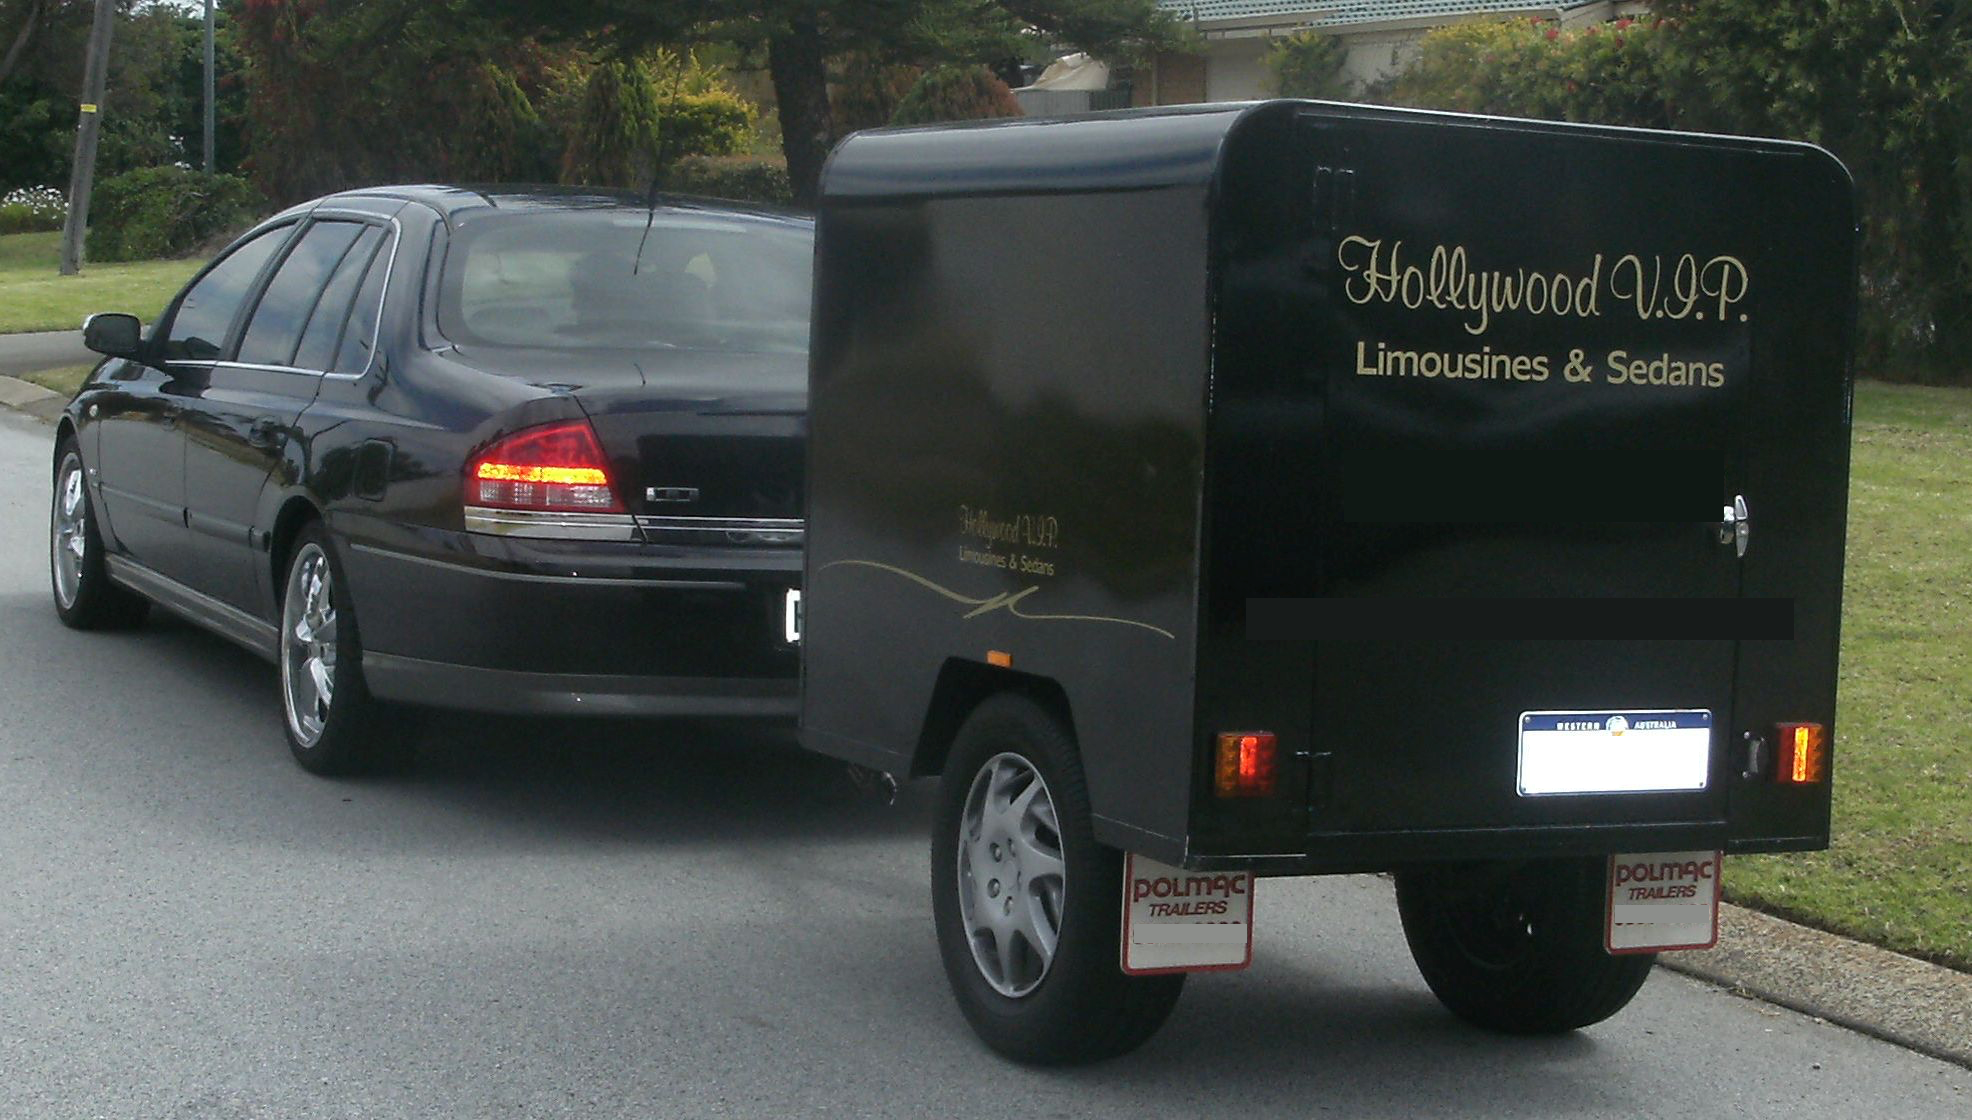 Hollywood VIP Limousines service photo